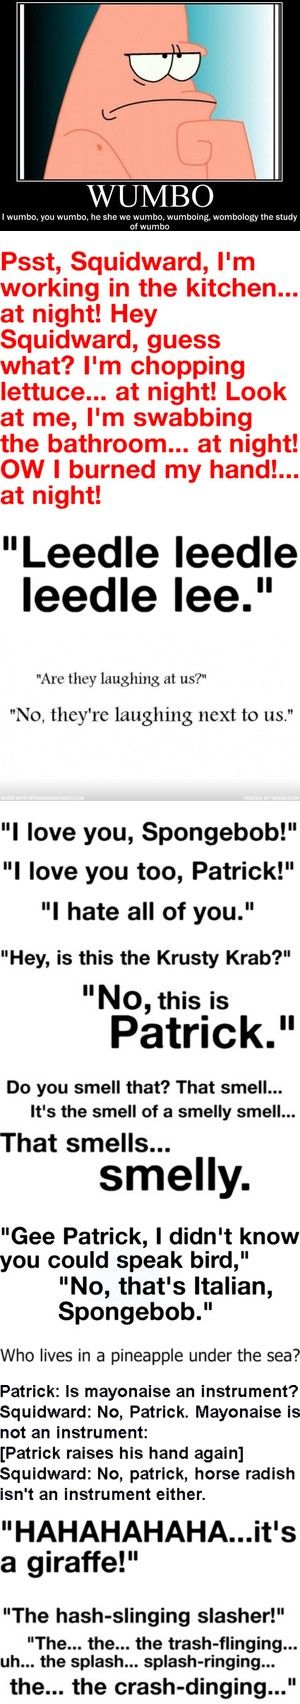 Some of the best Spongebob quotes.